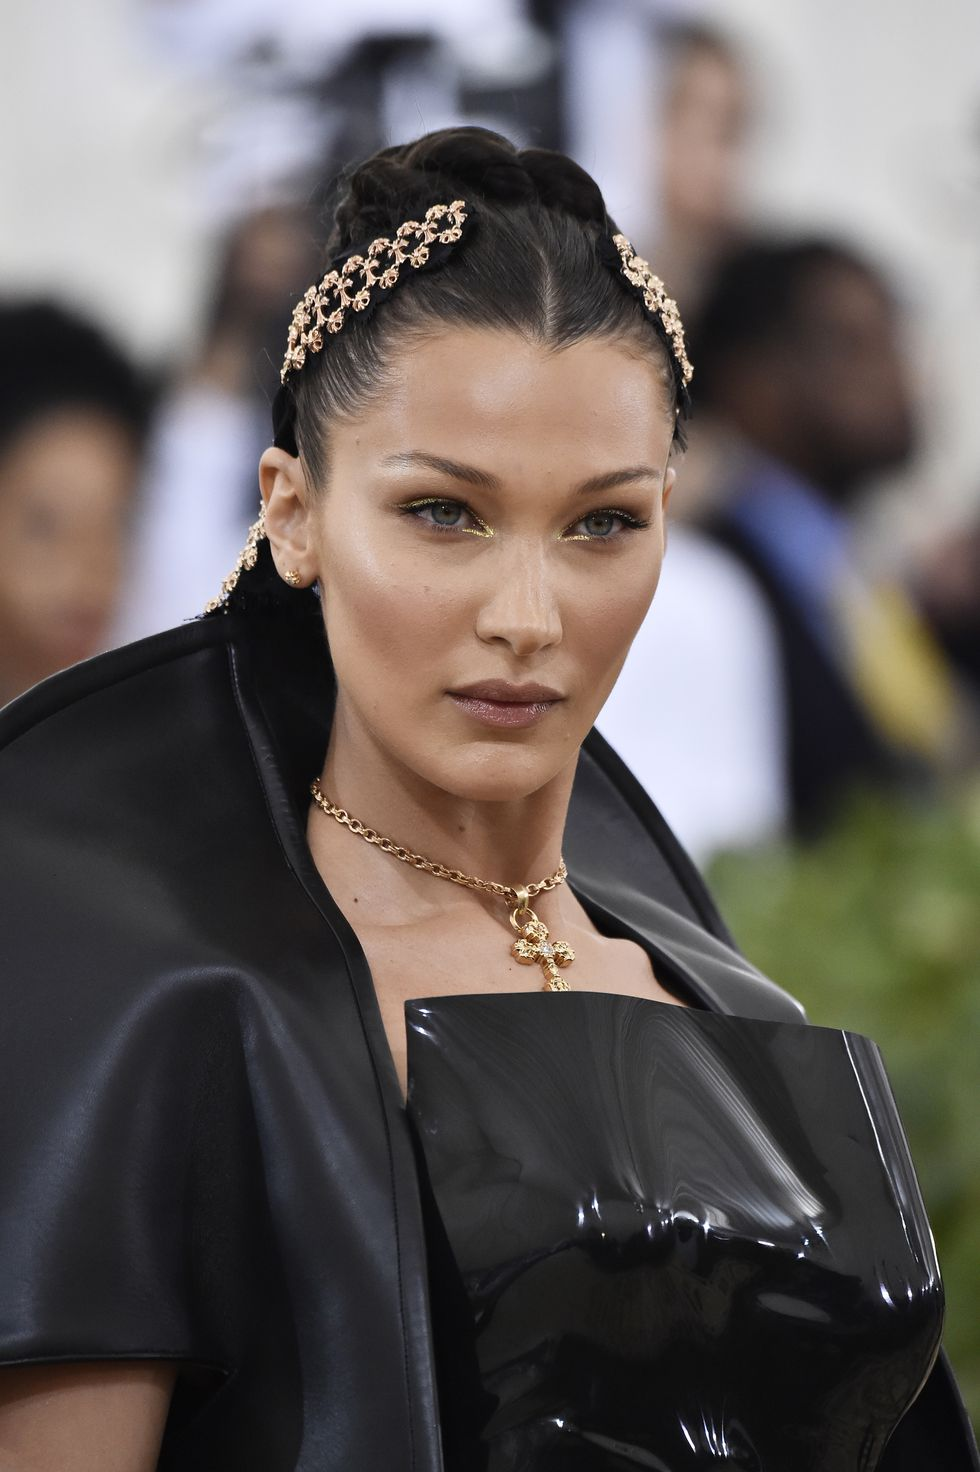 Best Beauty Looks @ MET GALA 2018